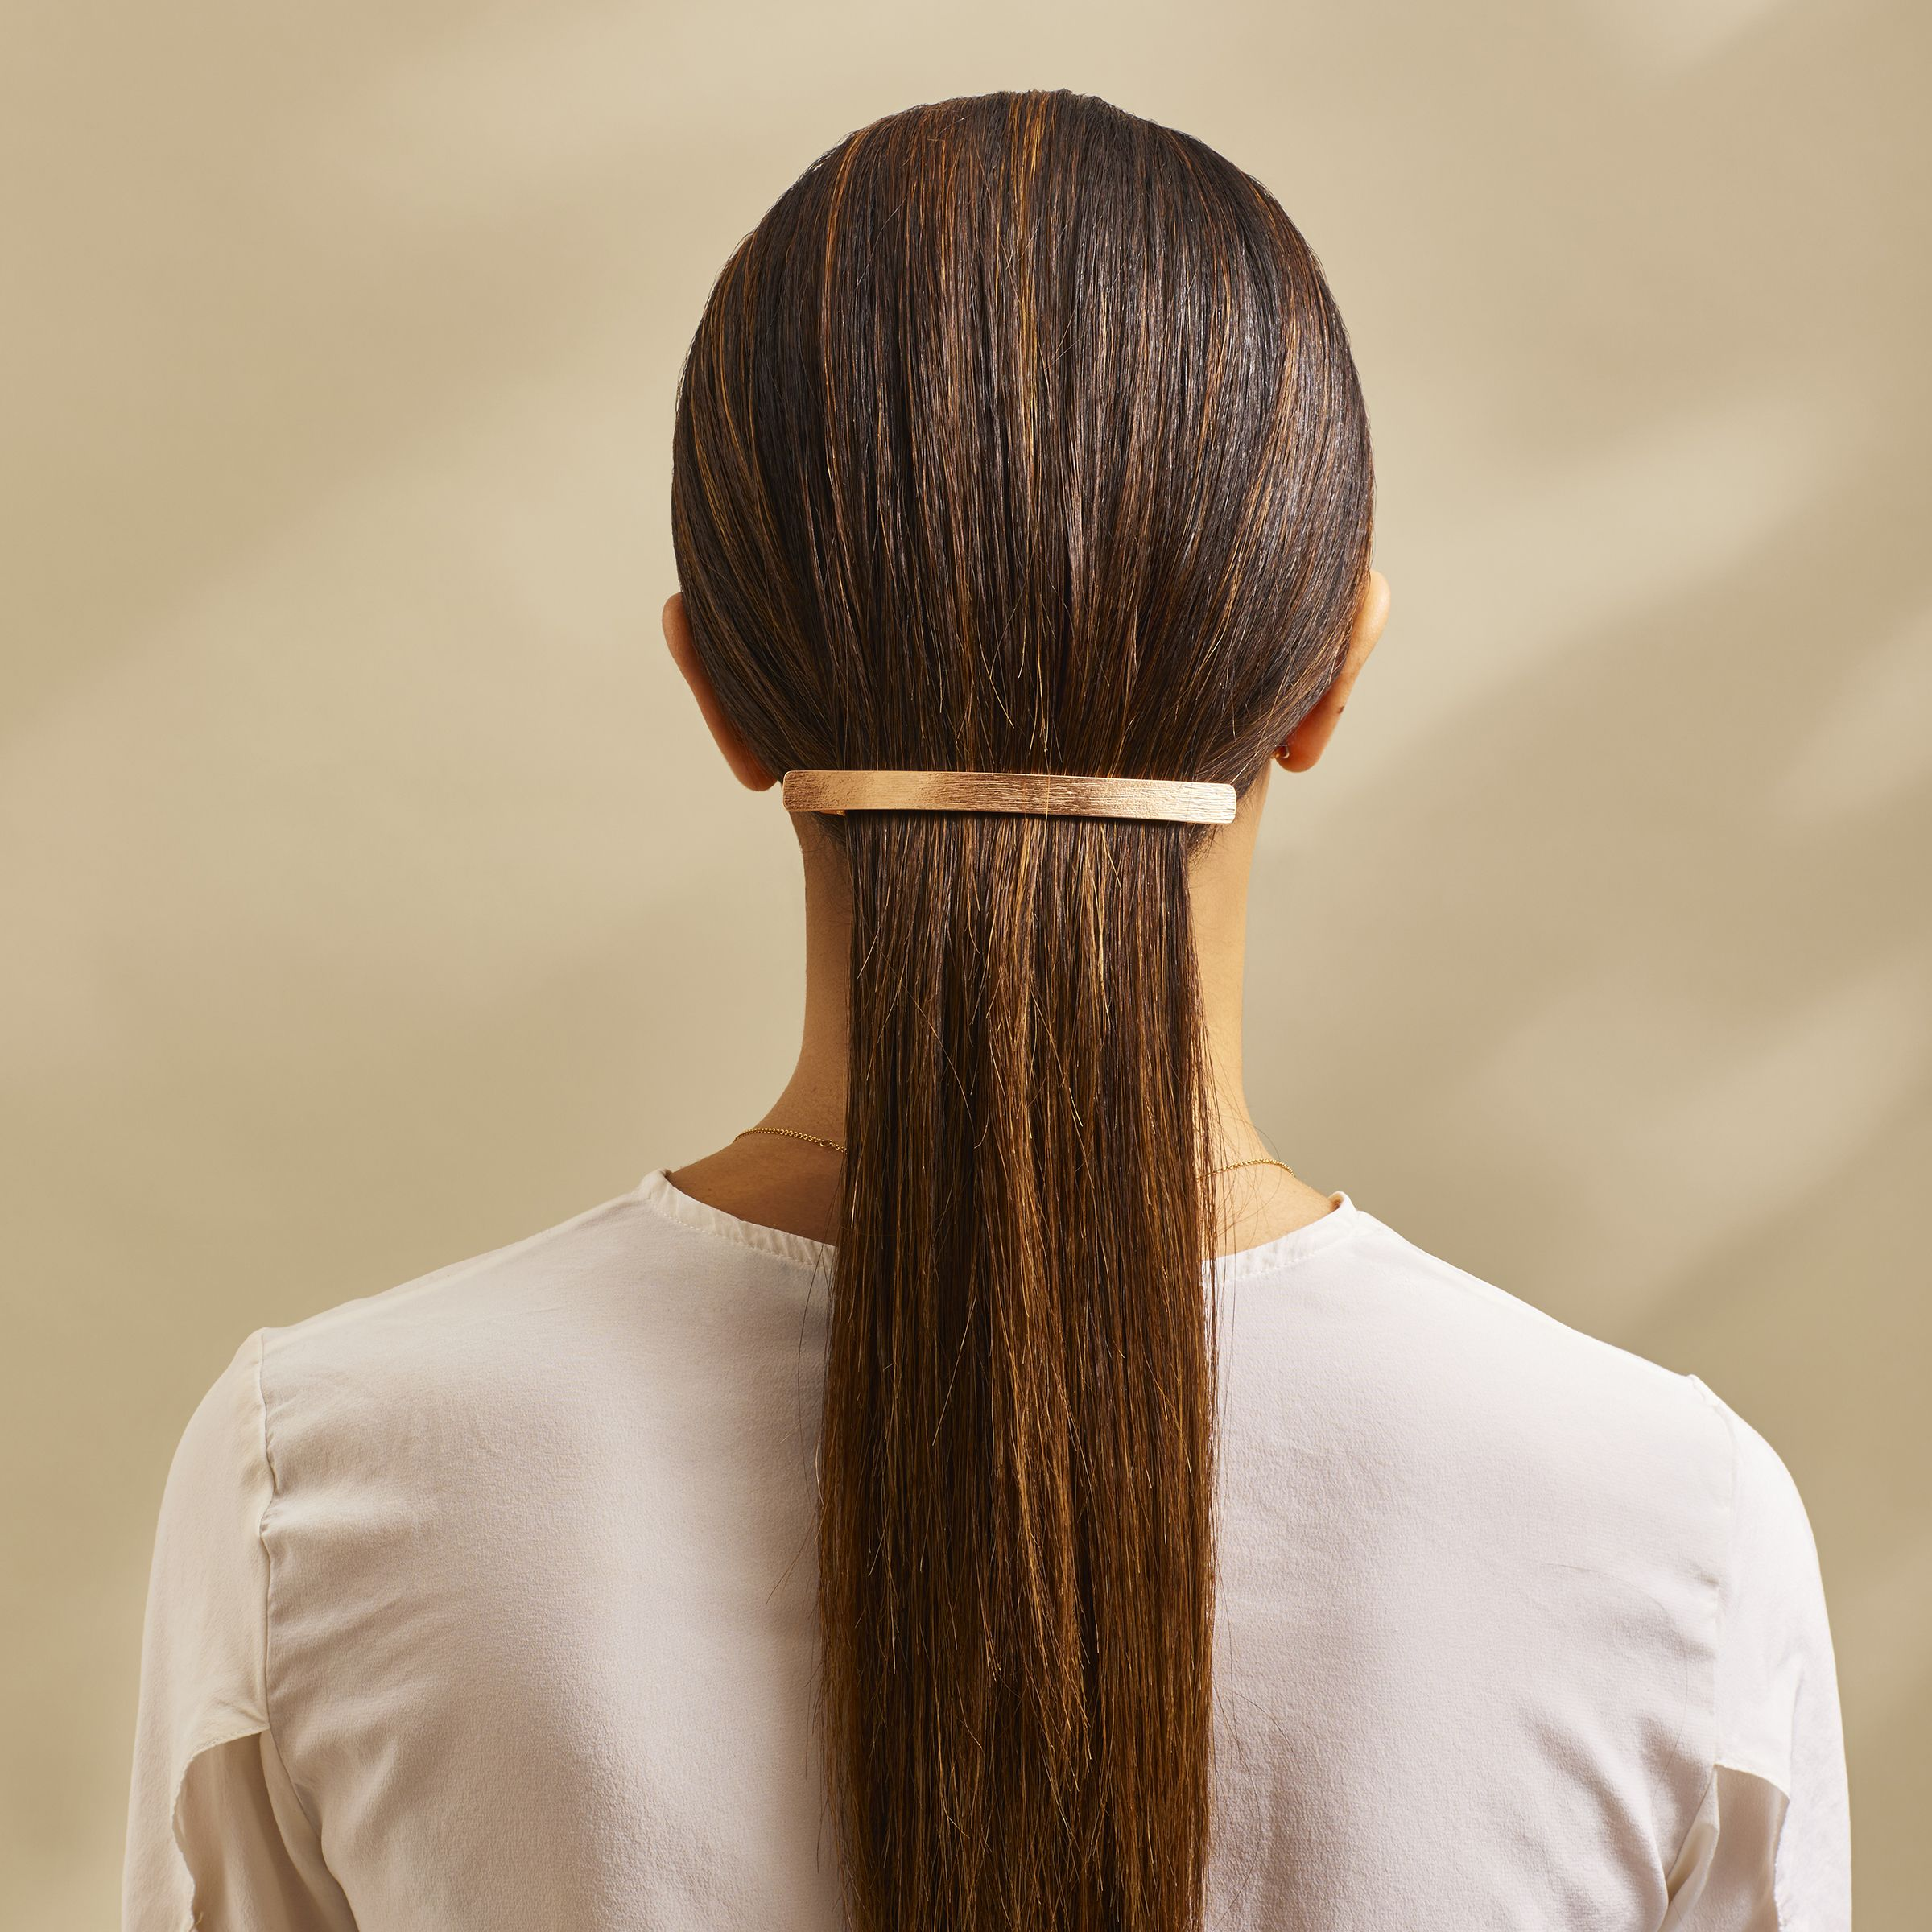 the benefits of olive oil for hair - how olive oil can help